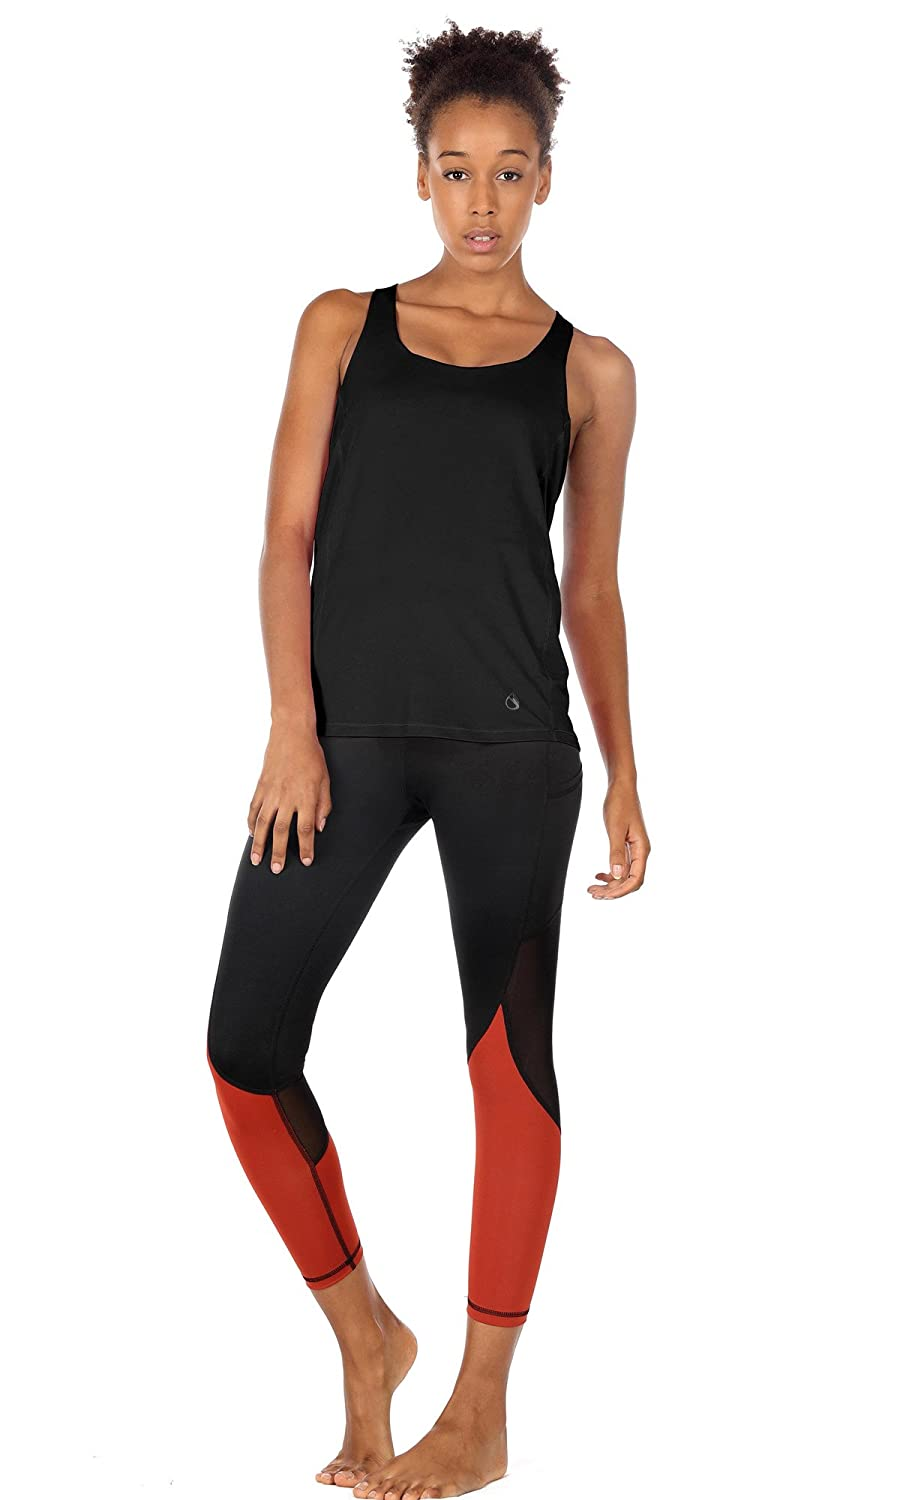 icyzone Yoga Tops Workouts Clothes Activewear Built in Bra Tank Tops for  Women at Amazon Women's Clothing store: